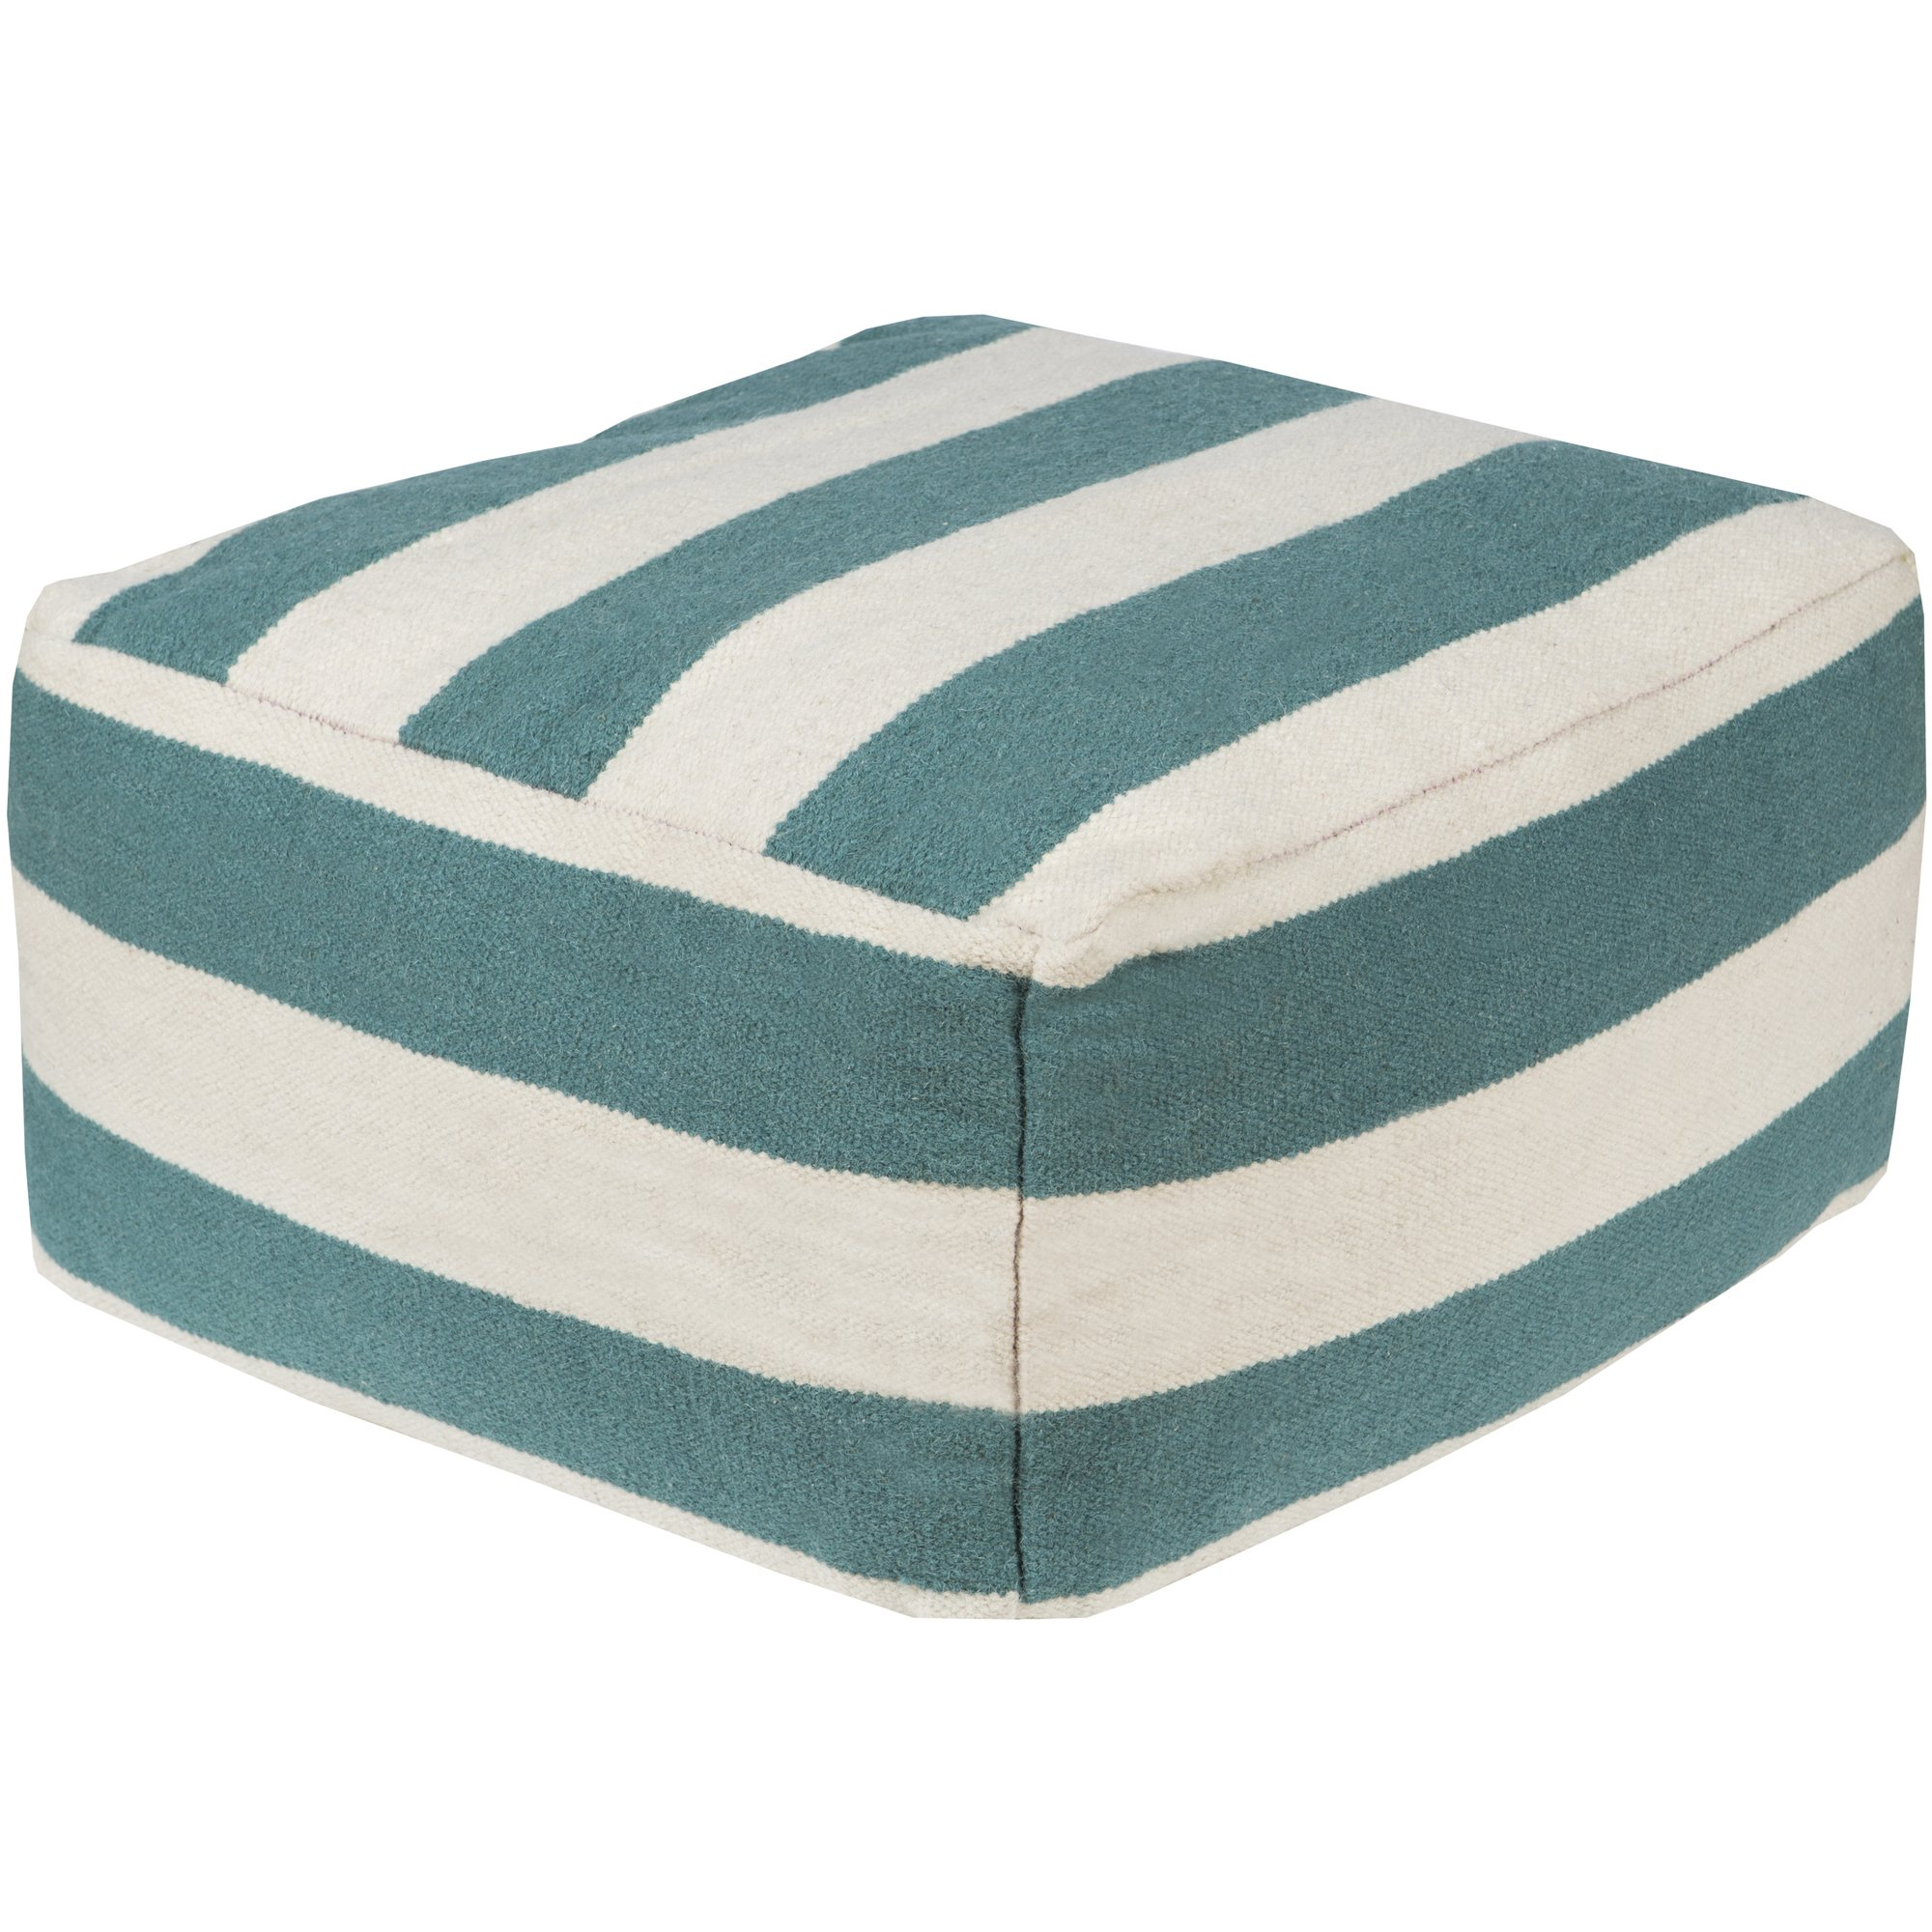 Surya POUF161-242413 100-Percent Wool Pouf, 24-Inch by 24-Inch by 13-Inch, Teal/Ivory